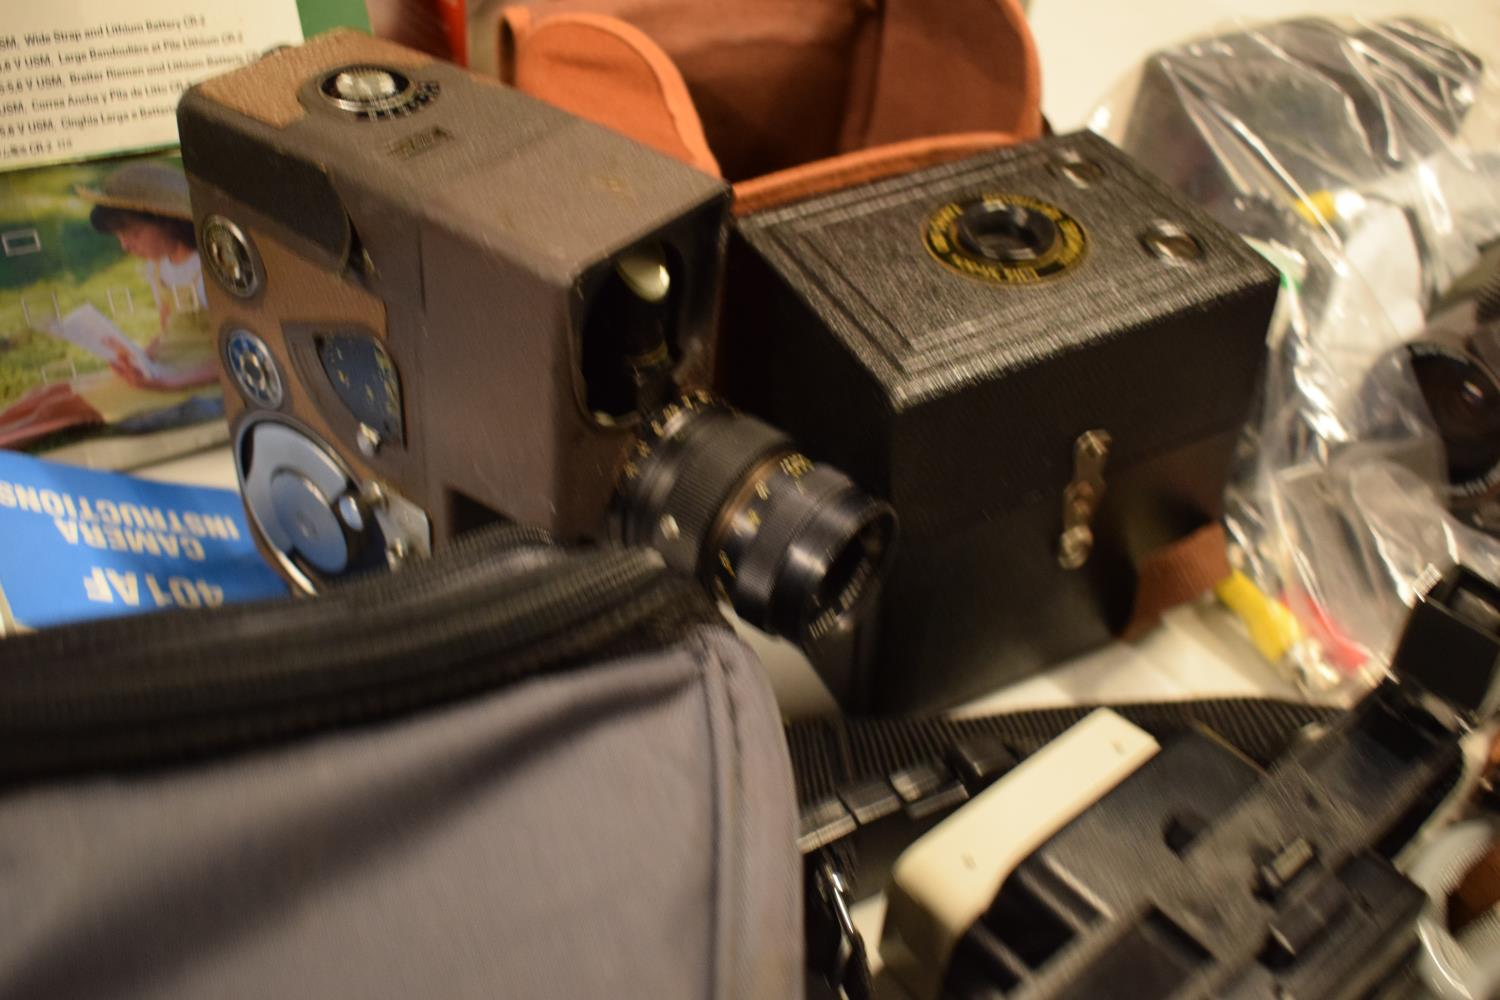 A mixed collection of cameras and accessories to include Kodak, Canon, JVC etc Condition is mixed. - Image 7 of 7